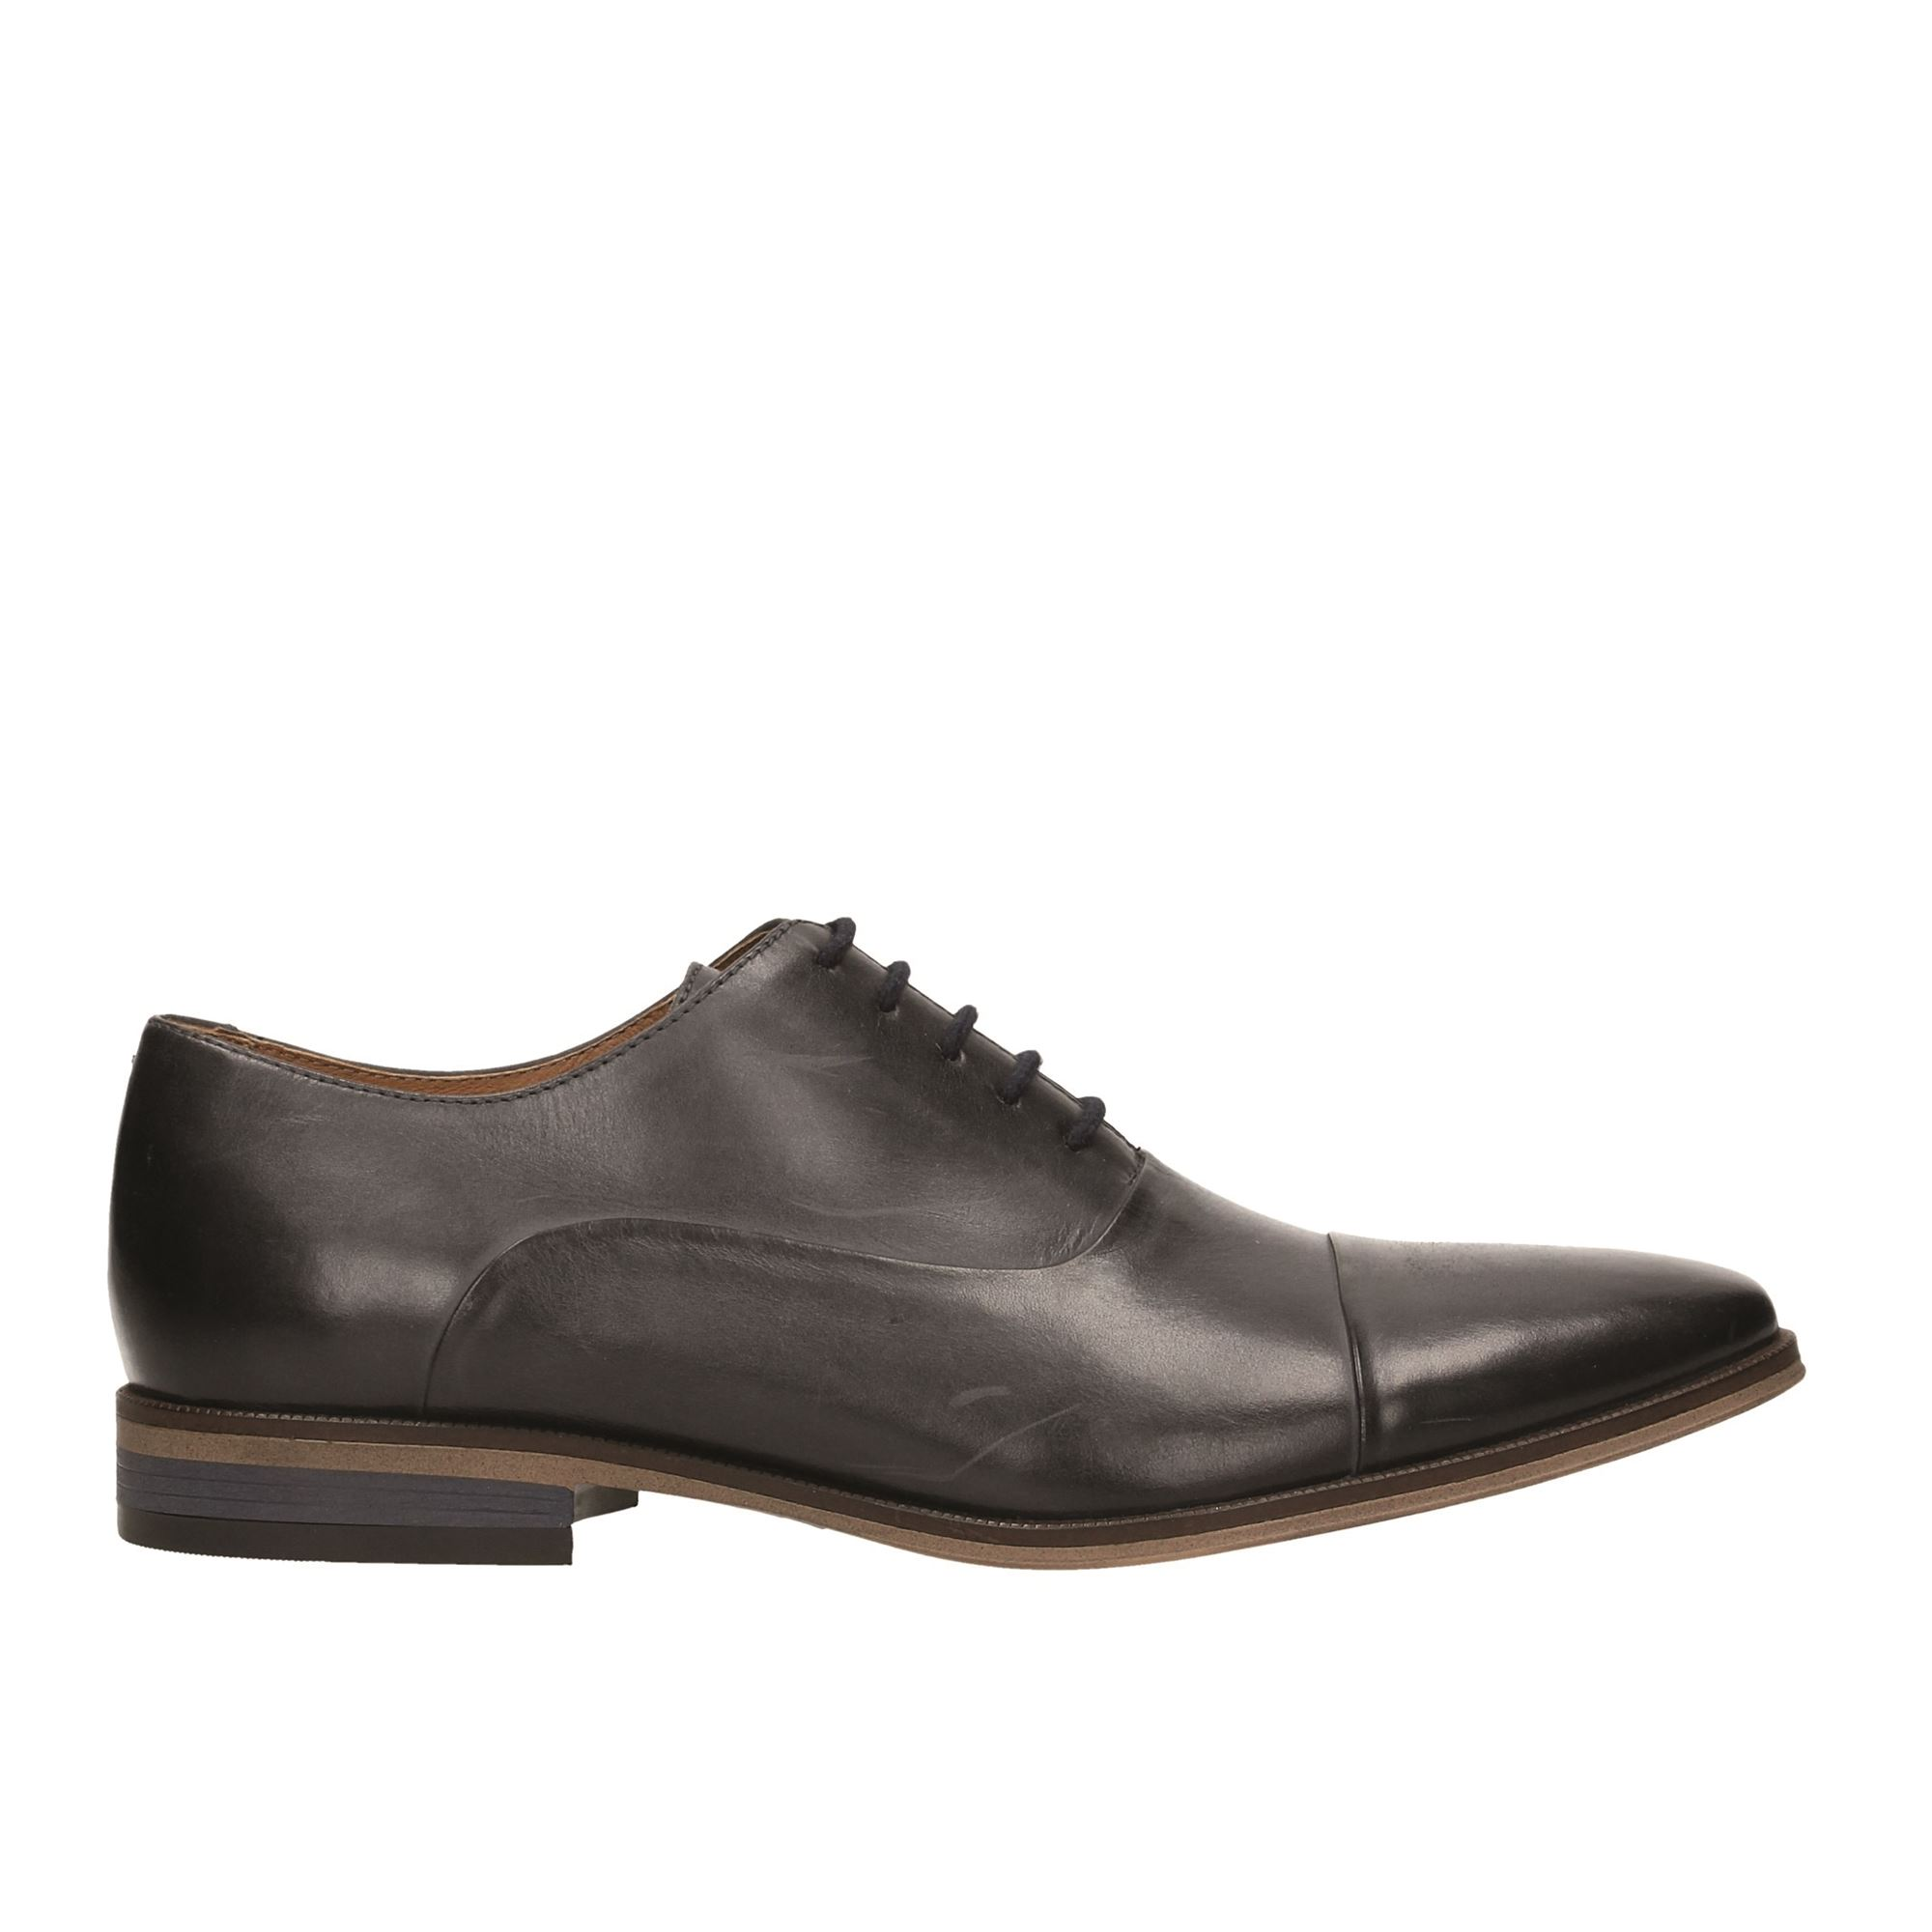 Tata Italia Shoes Man Derby Navy MS-311R01